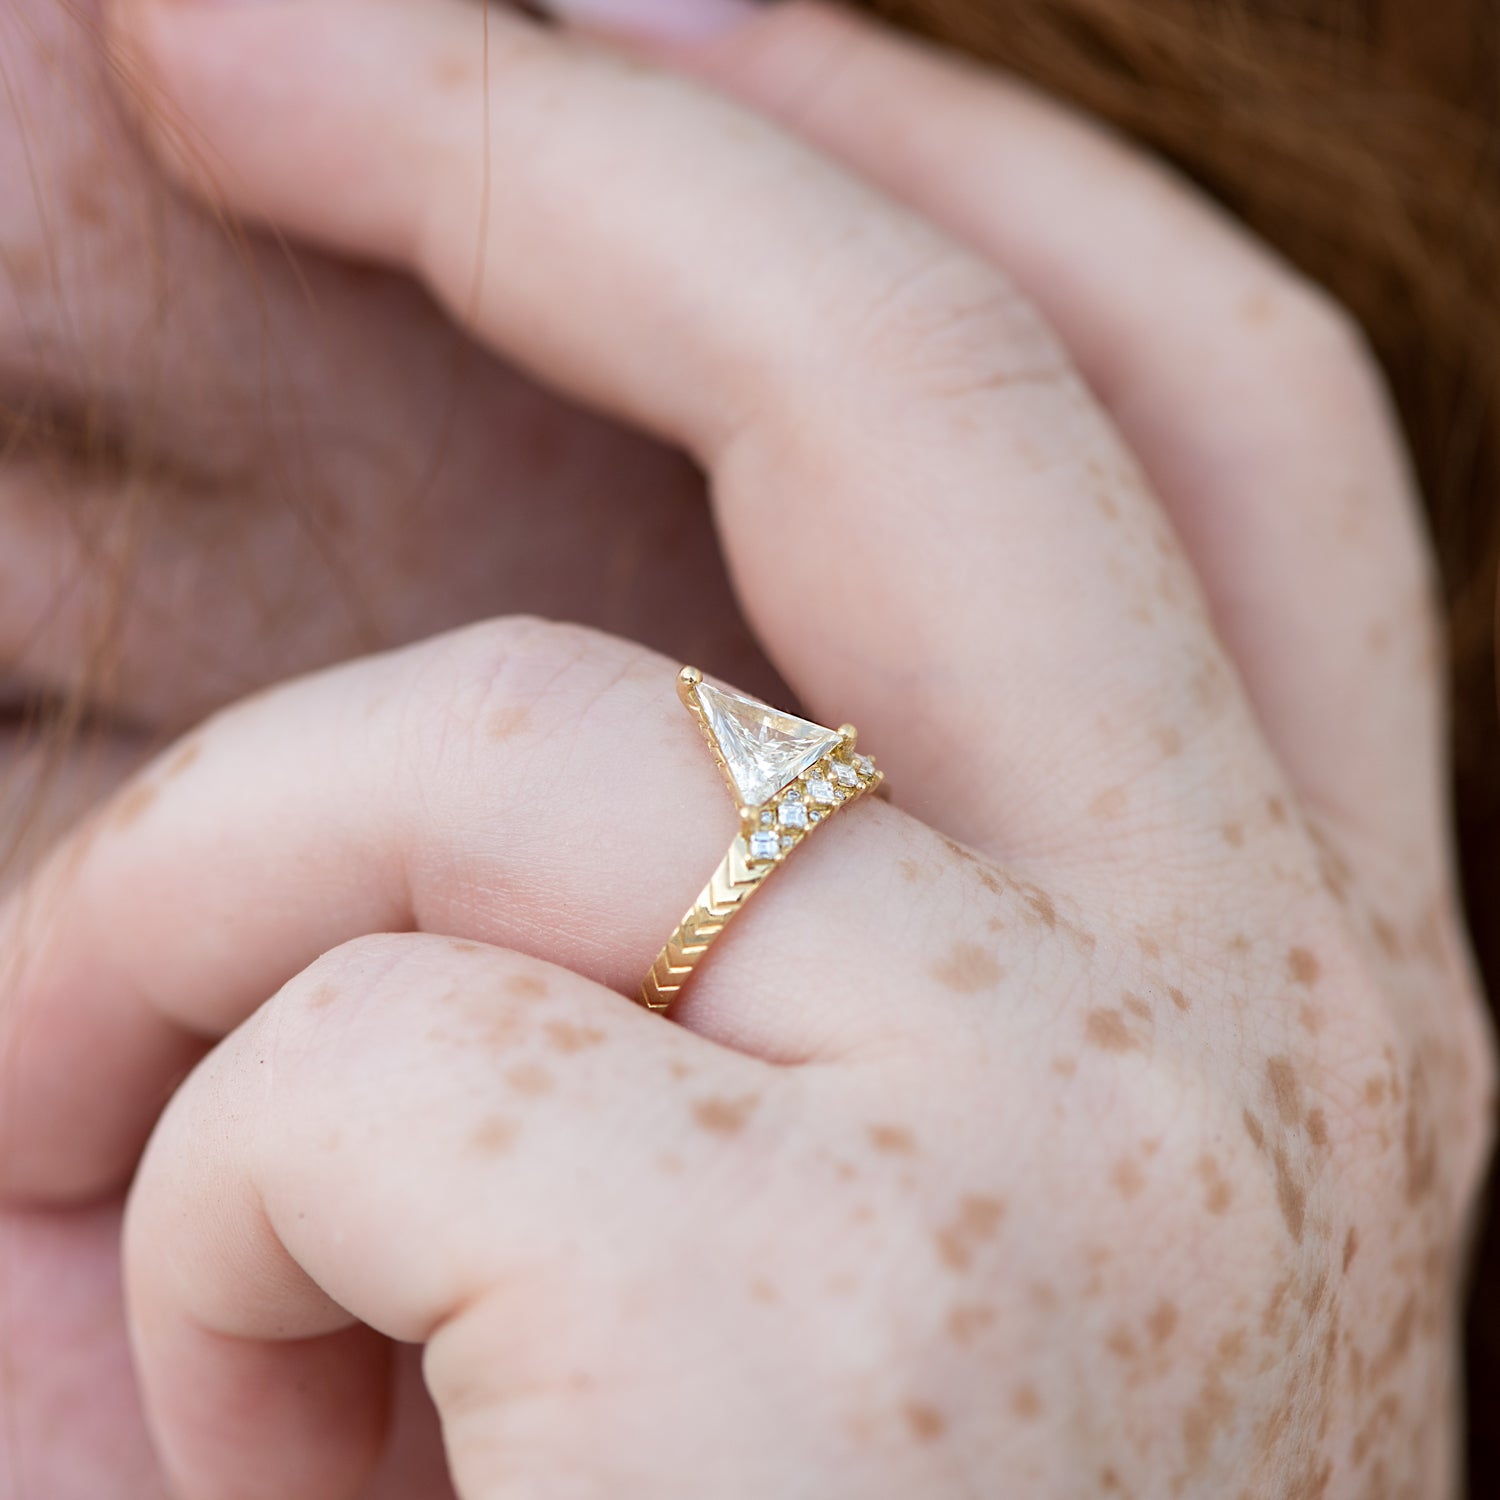 Detailed-Triangle-Diamond-Ring-with-Gold-Pattern-0.5-carat-CLOSEUP-movement